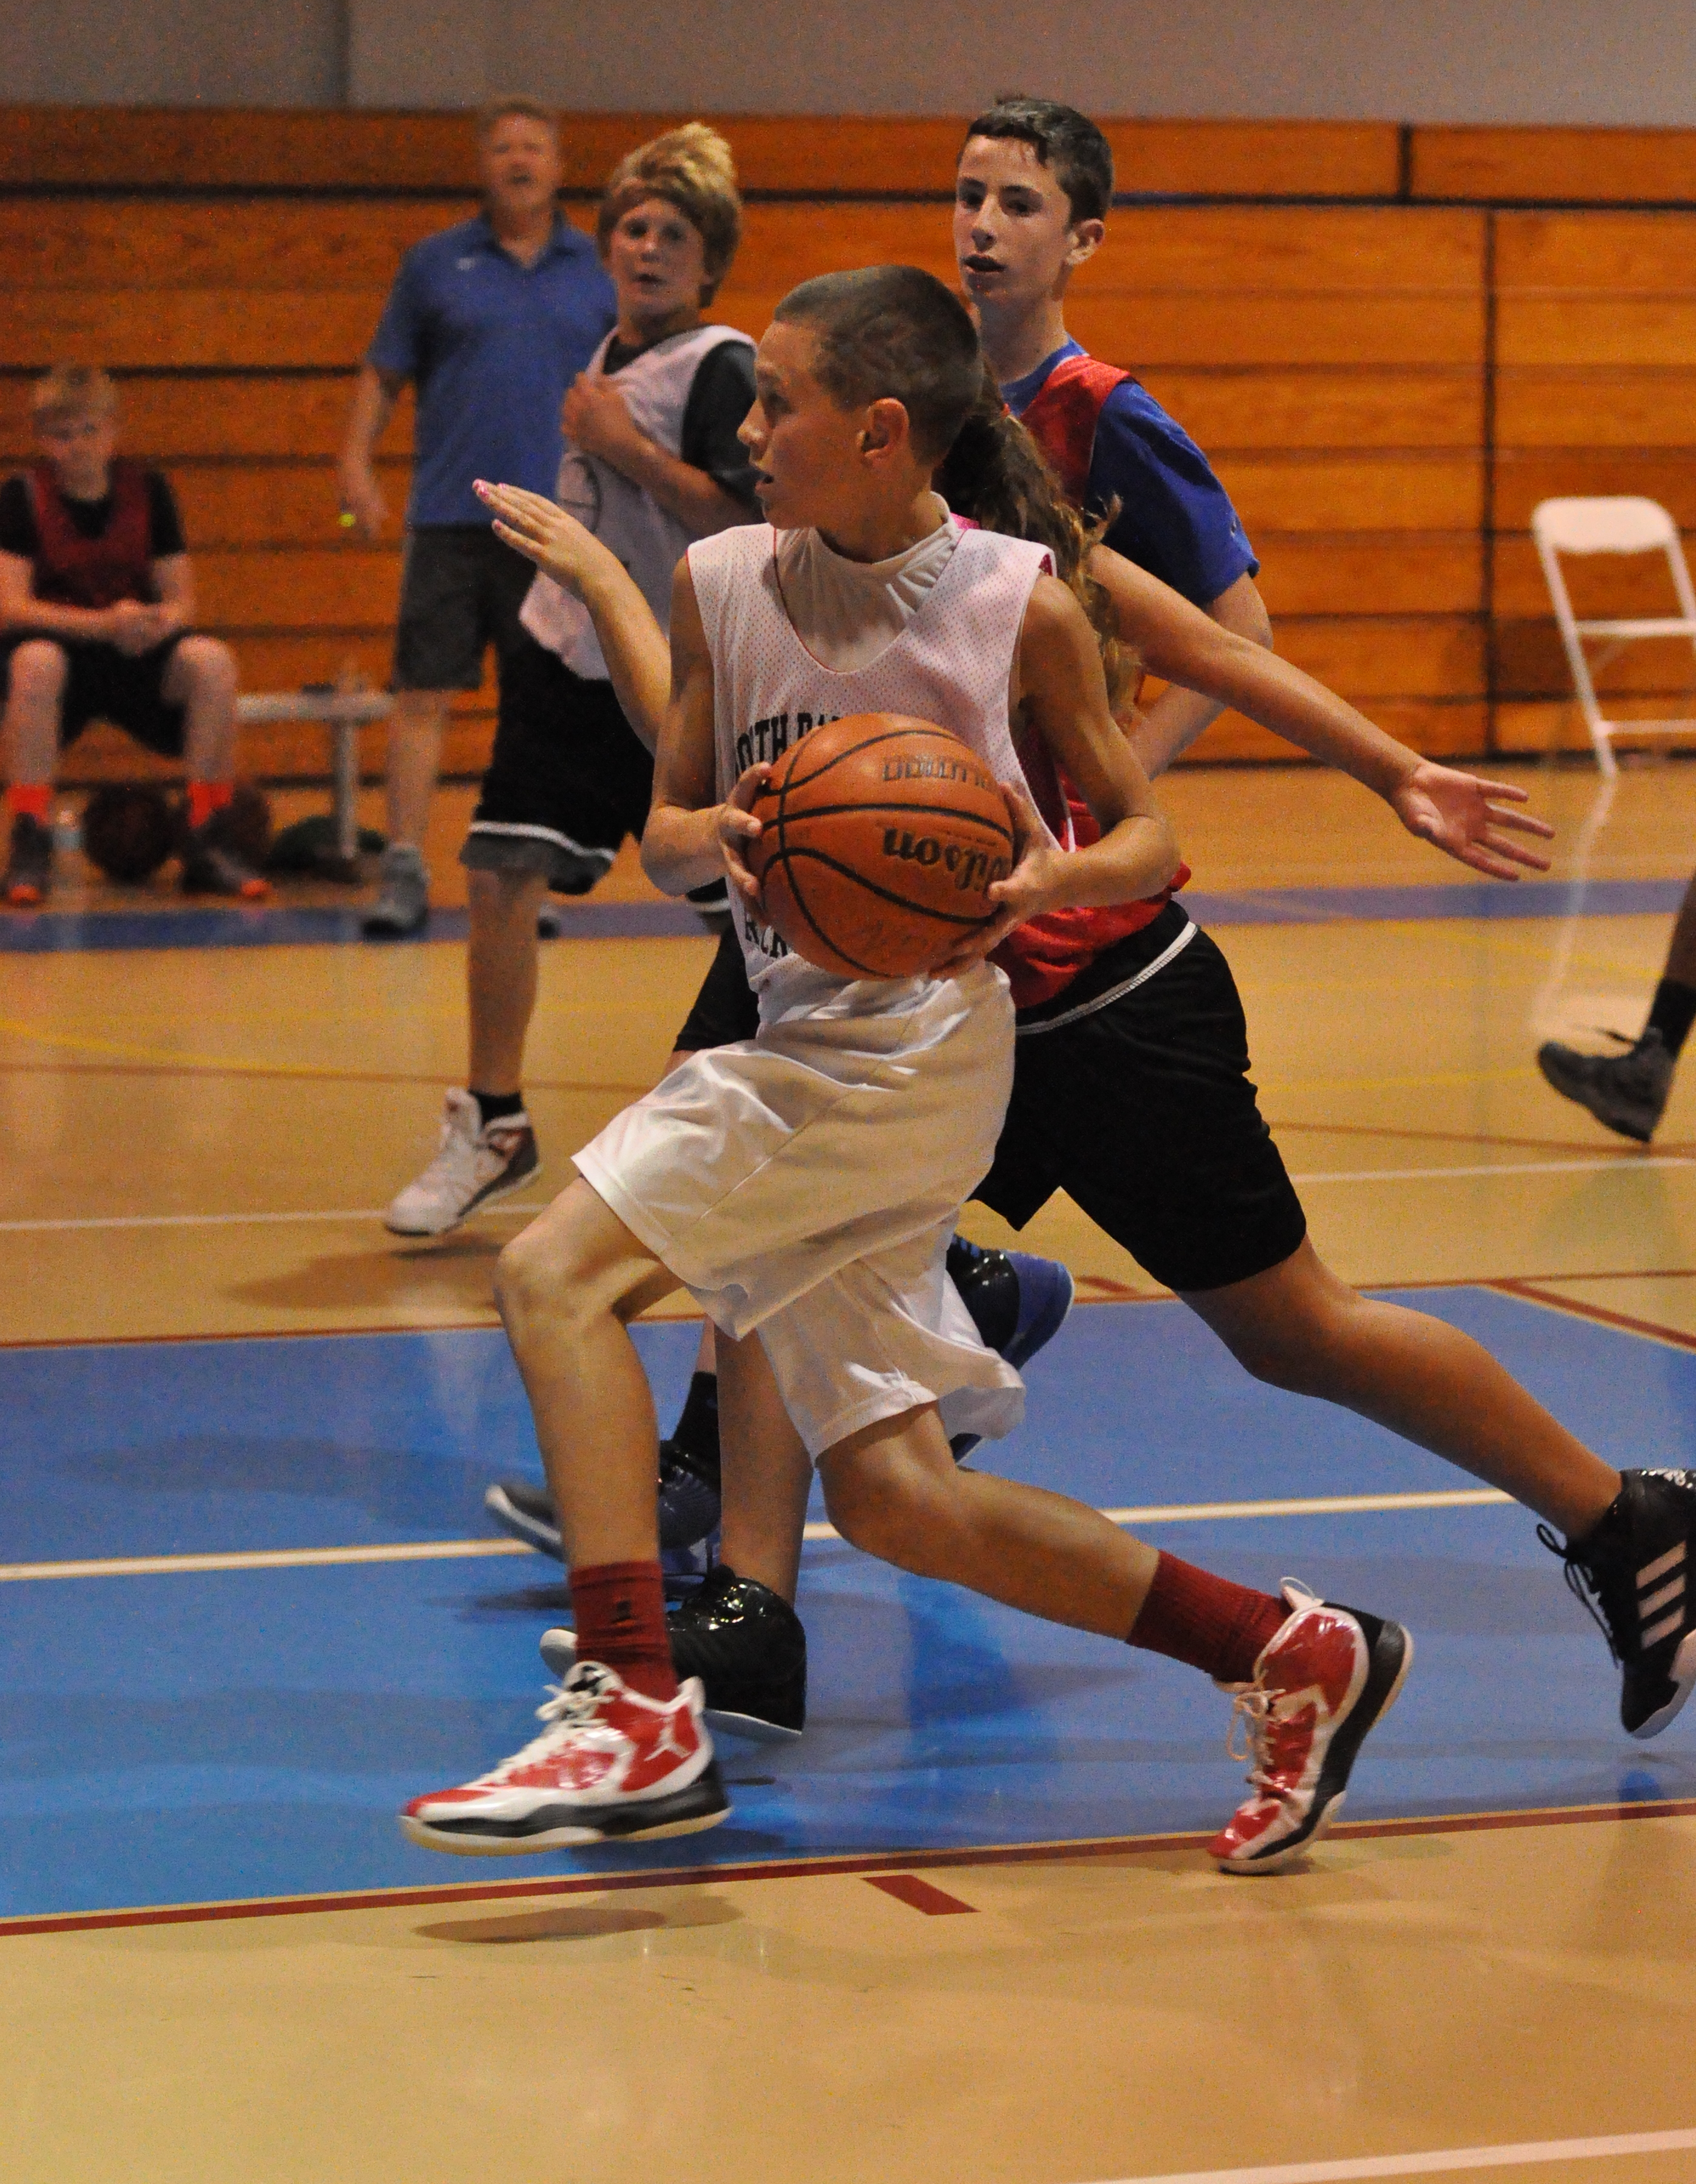 Boy playing basketball, driving to hoop past defender